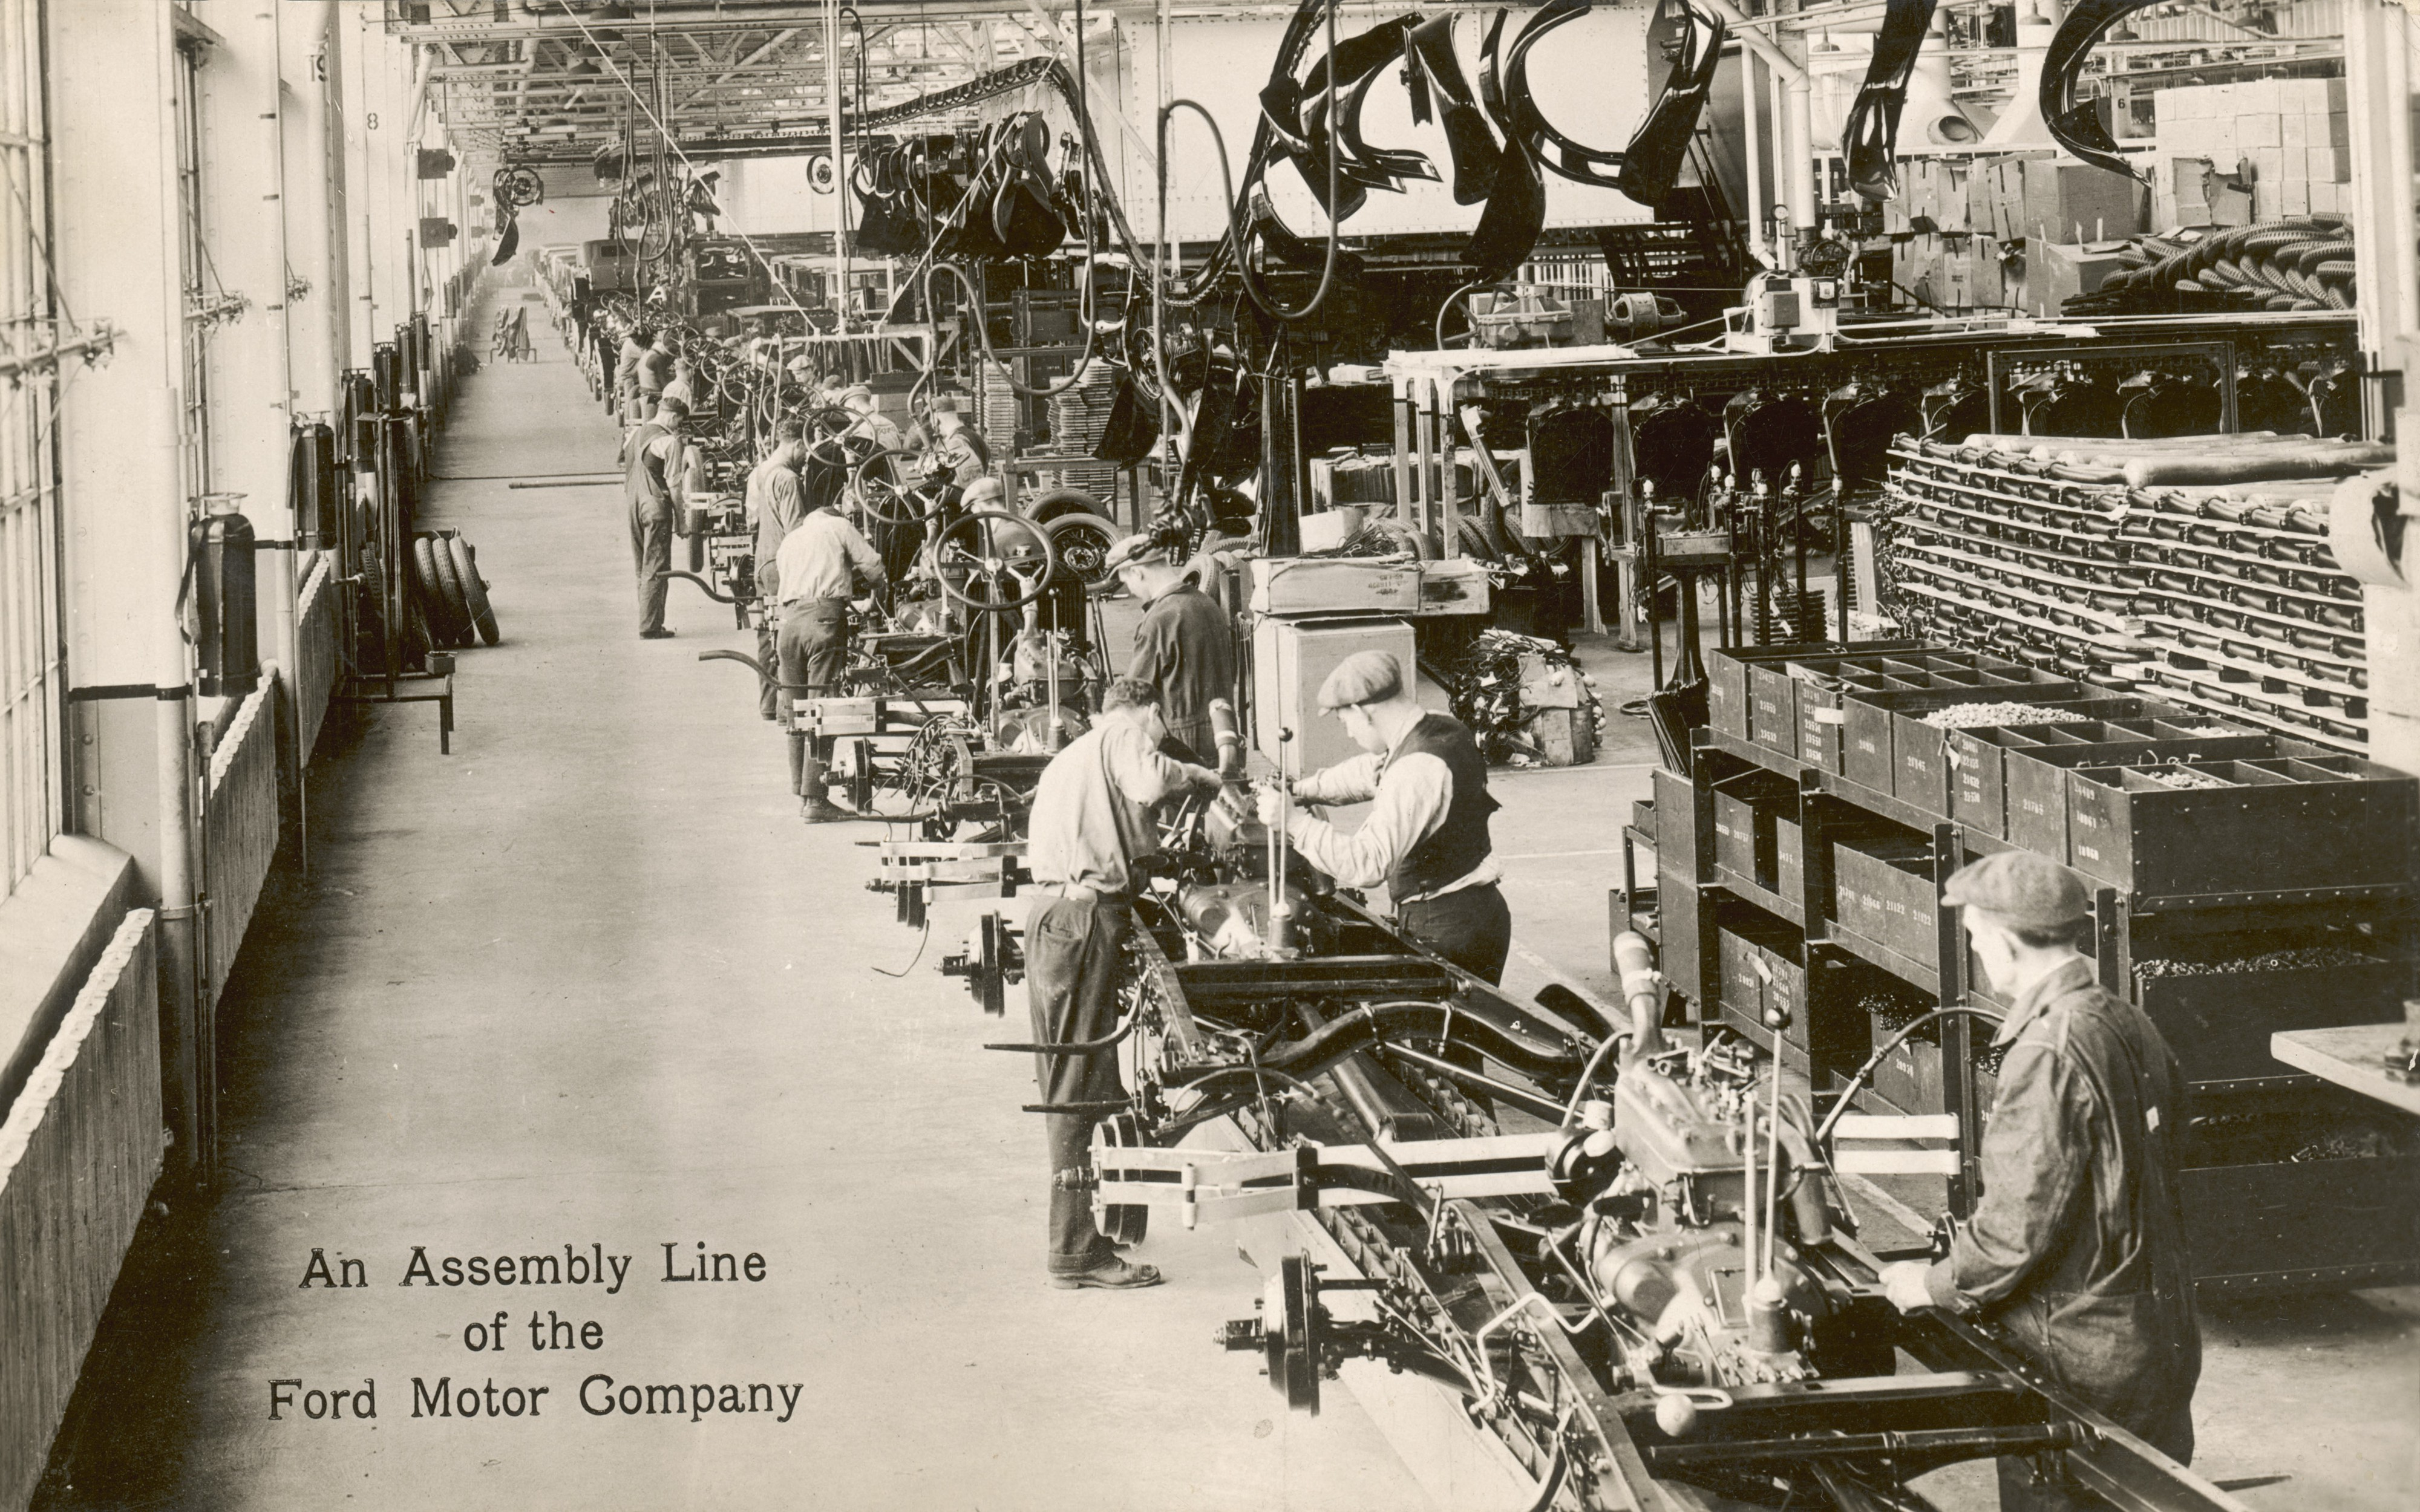 Sepia photograph of a Ford assembly line from the early Twentieth Century.